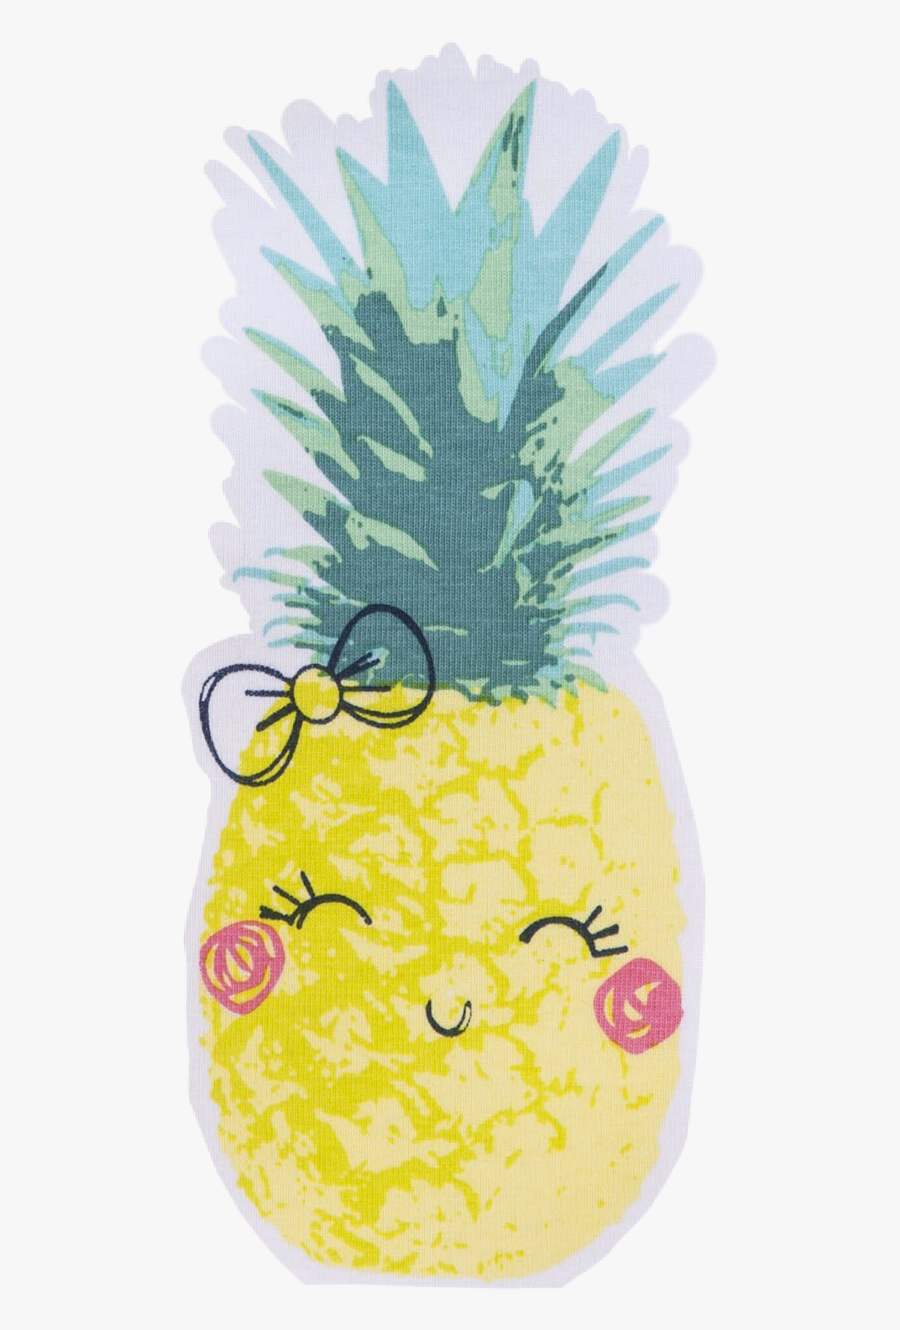 Made By @swalker3 - Pineapple Cartoon Summer Backgrounds, Transparent Clipart